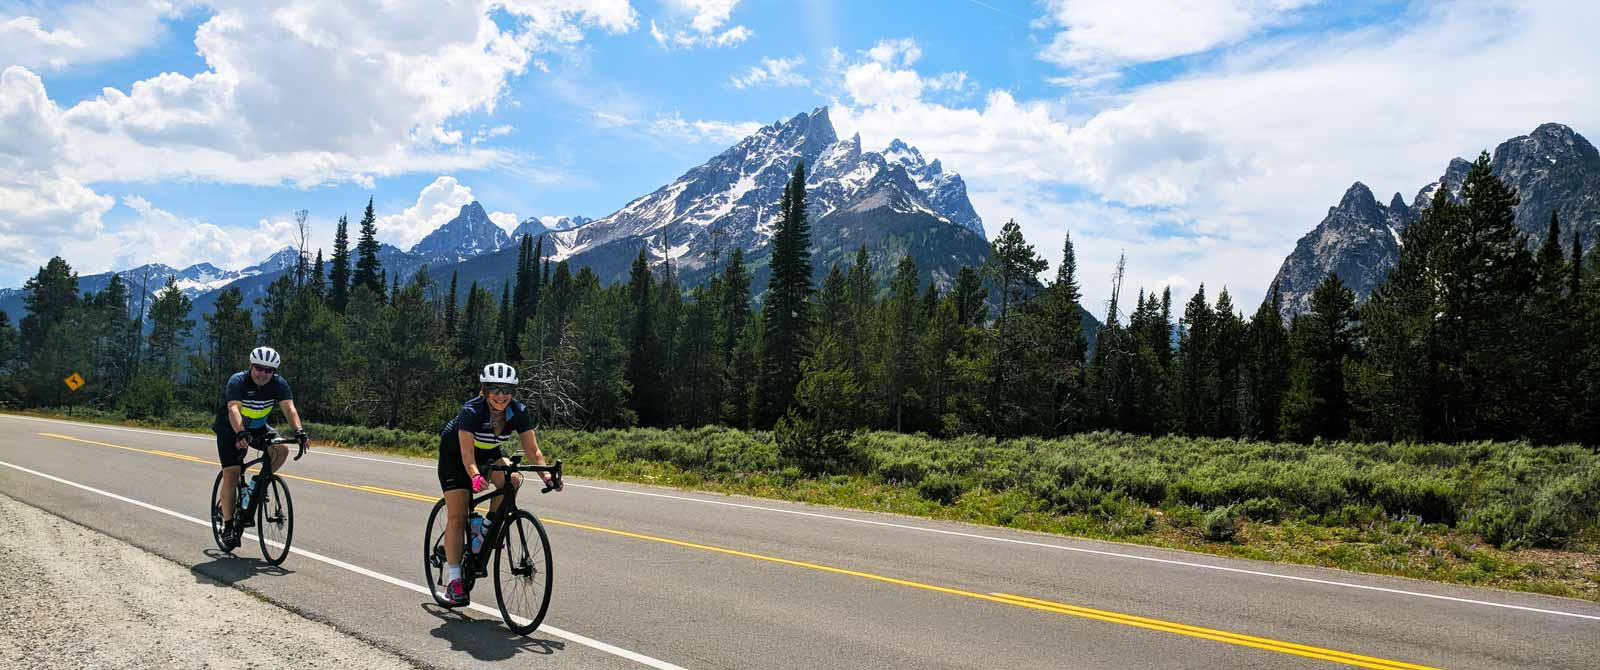 Plan your Grand Teton National Park Trip with our Free